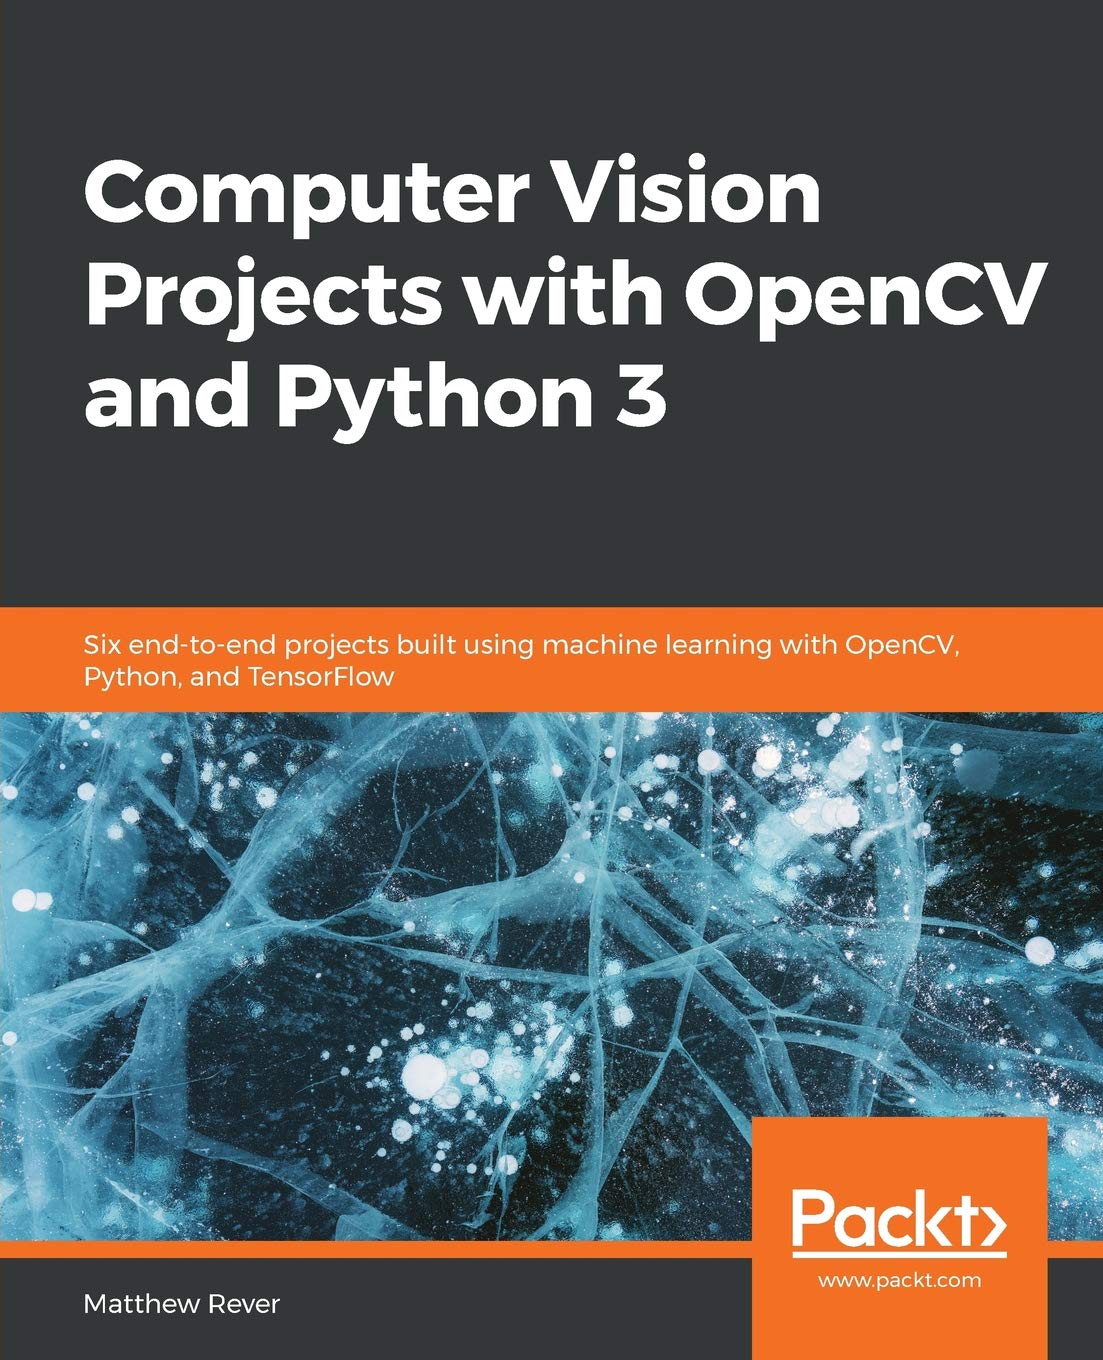 Computer Vision Projects with OpenCV and Python 3: Six end-to-end